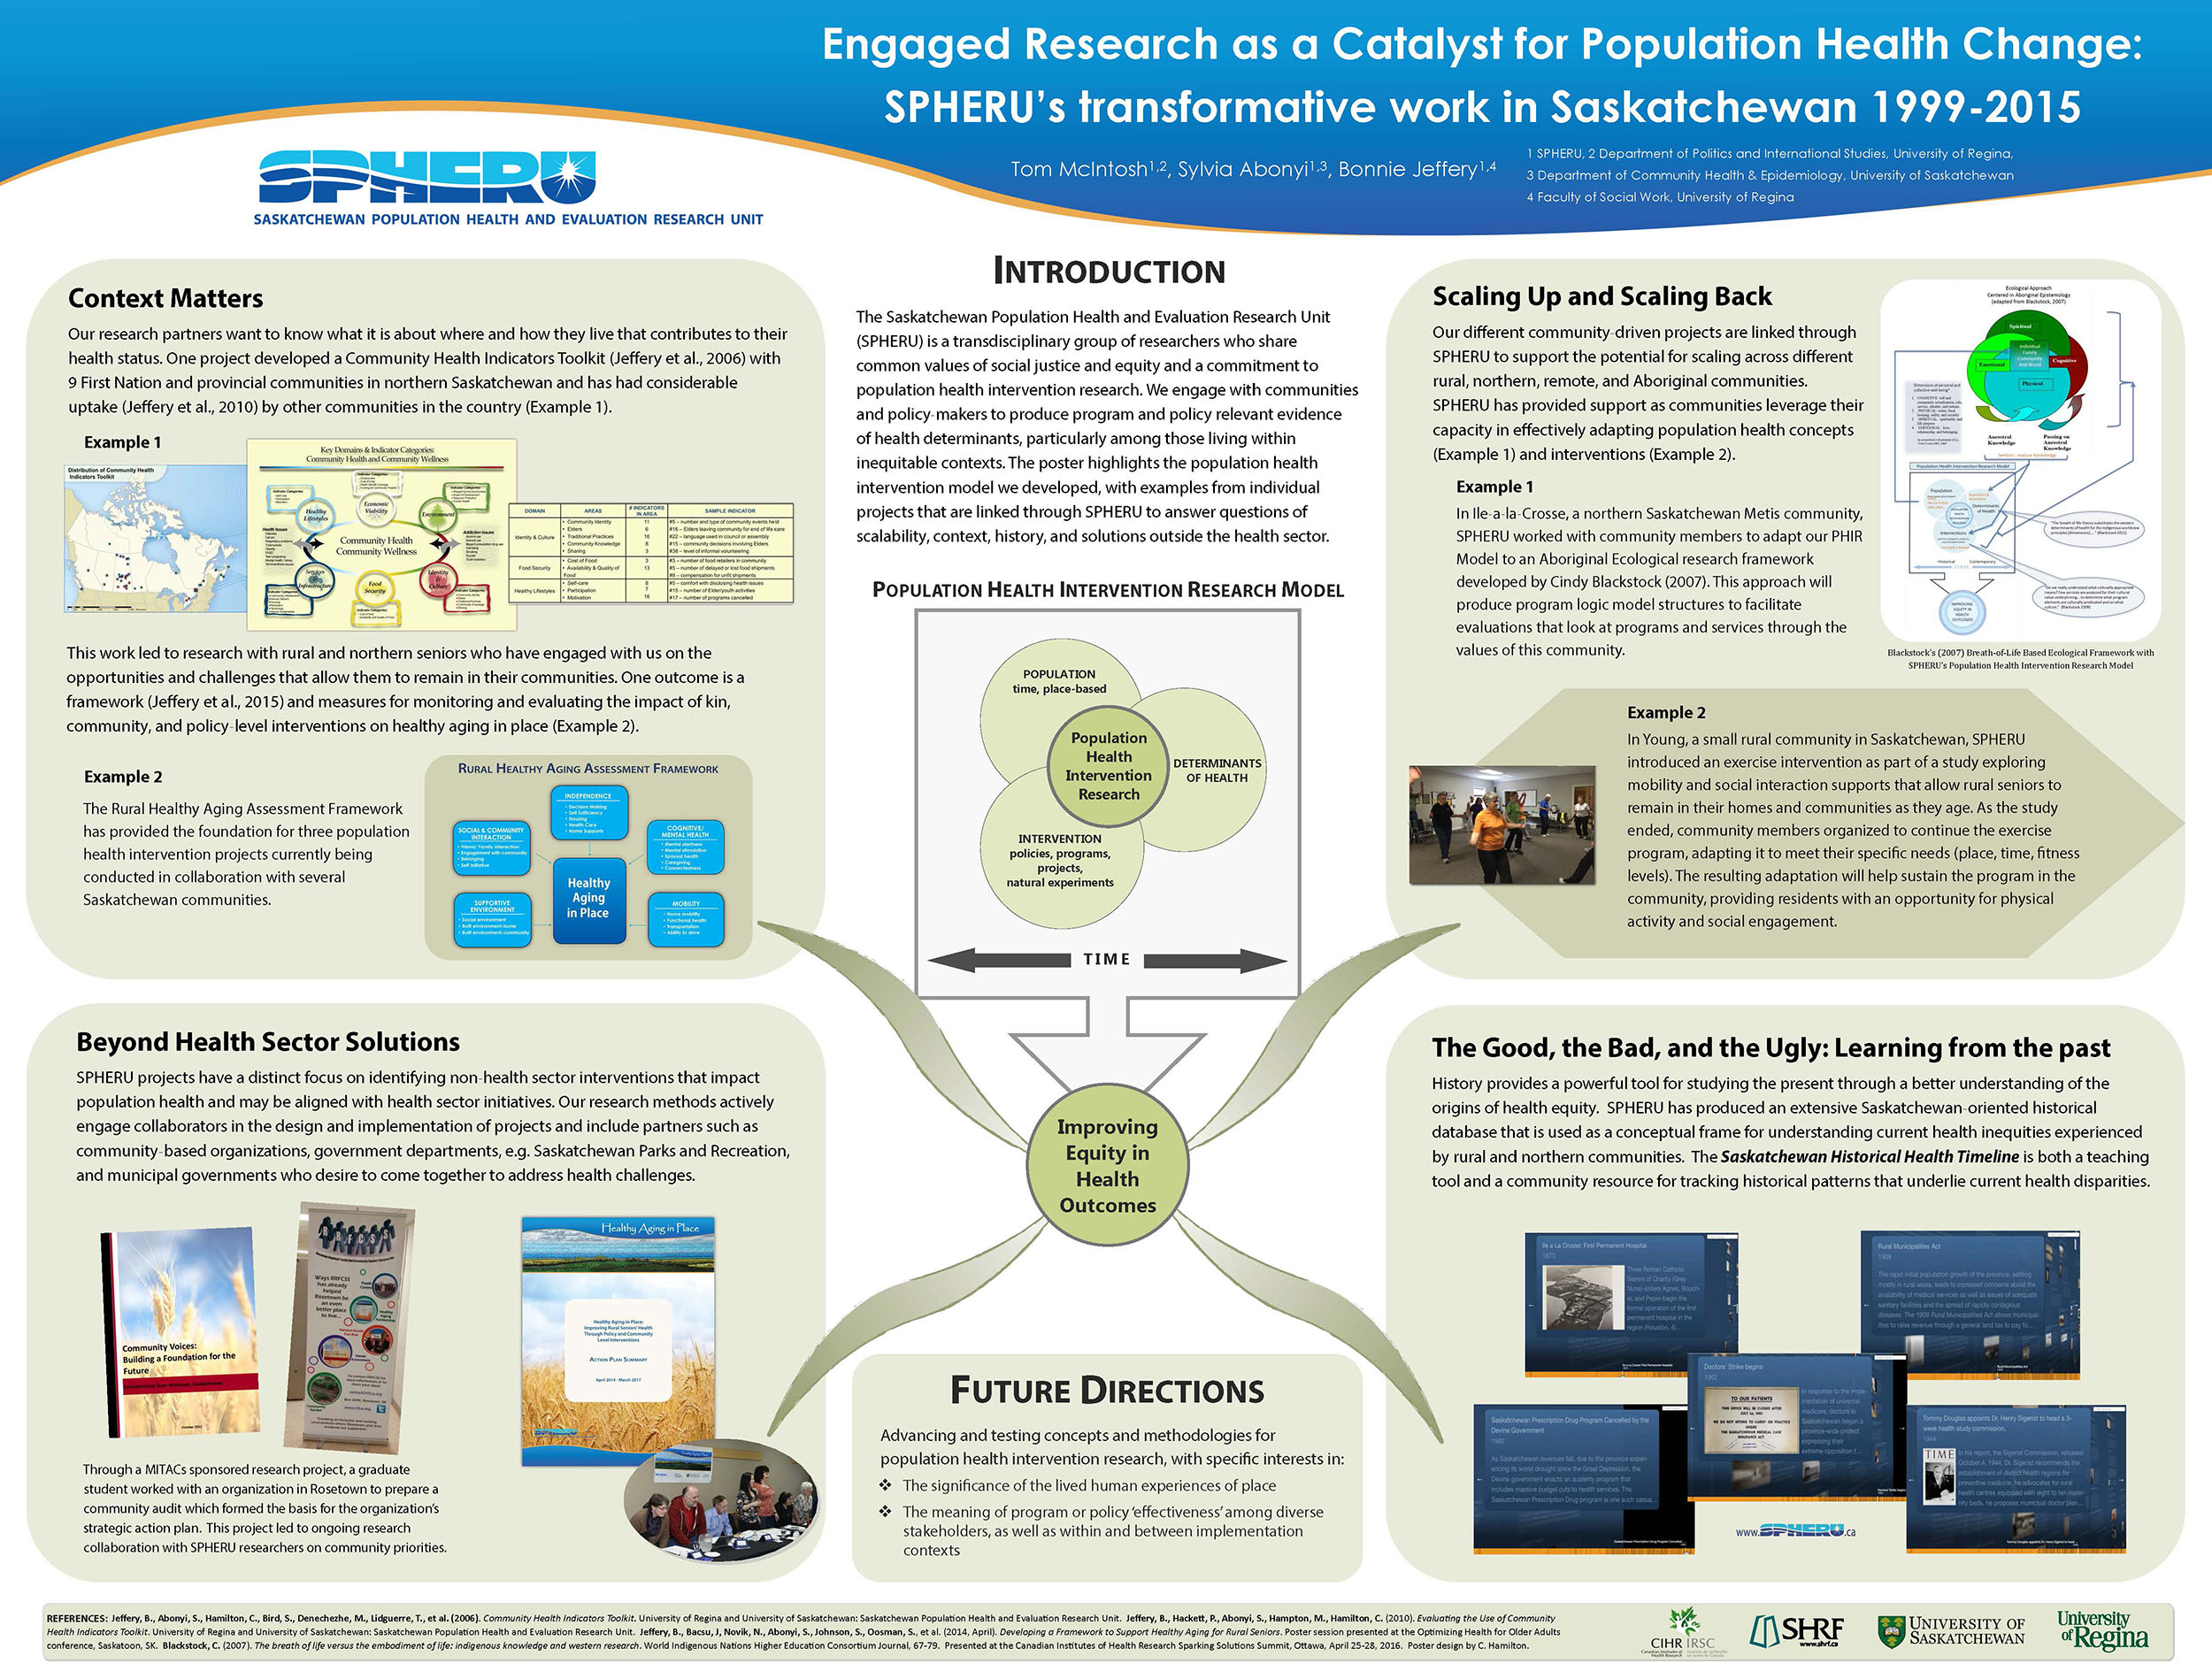 This is one of two posters that were presented at the CIHR Sparking Solutions conference in Ottawa.